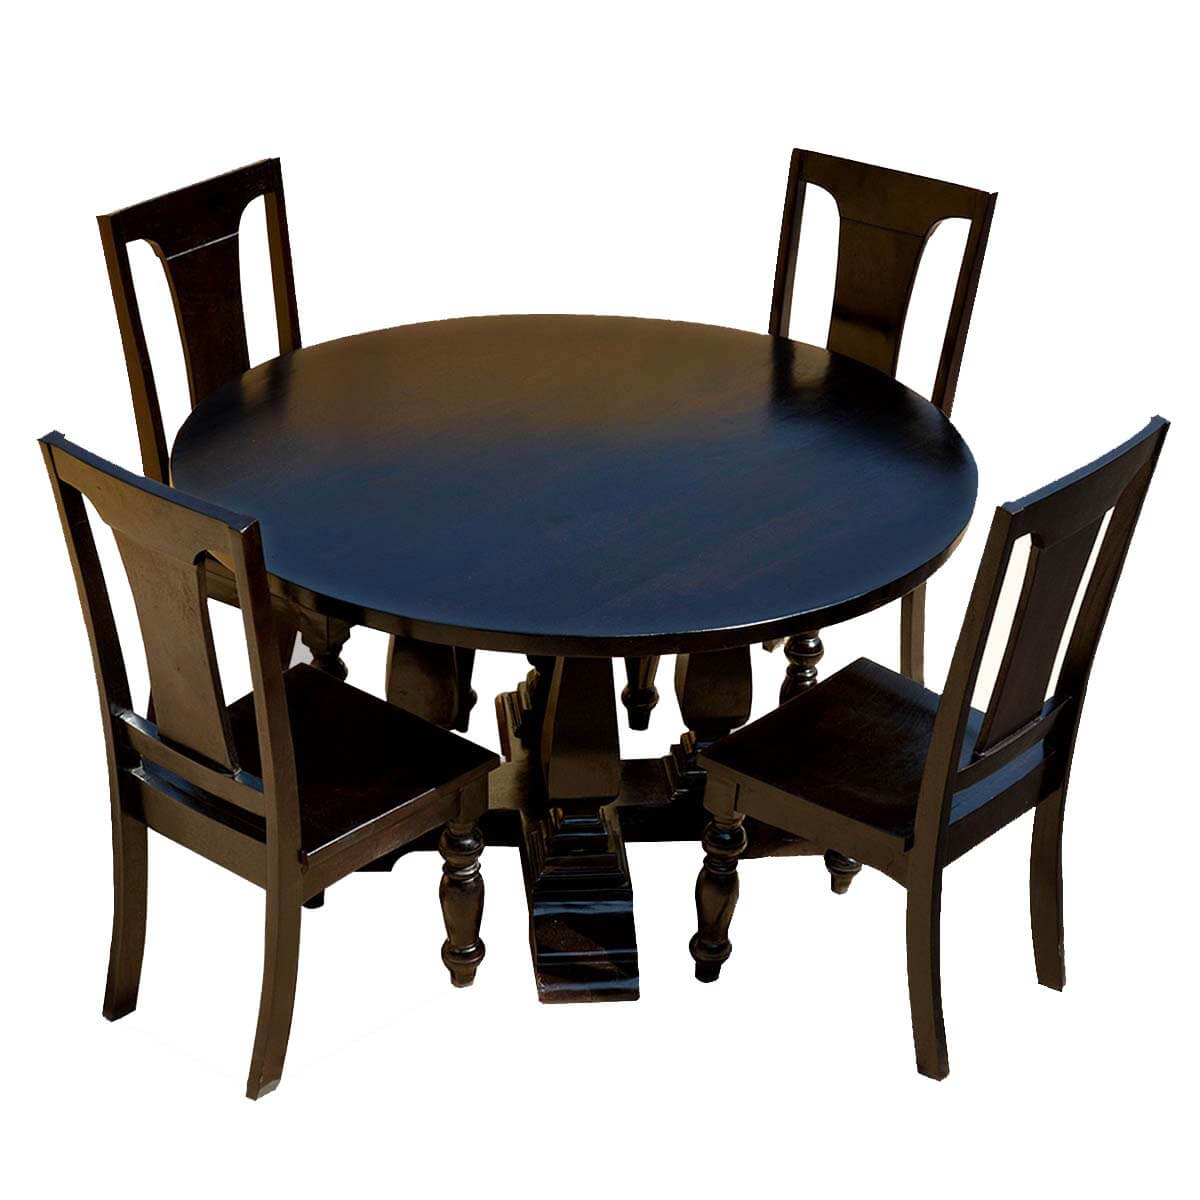 Mango wood lincoln study black round dining table chair set for Black round dining table